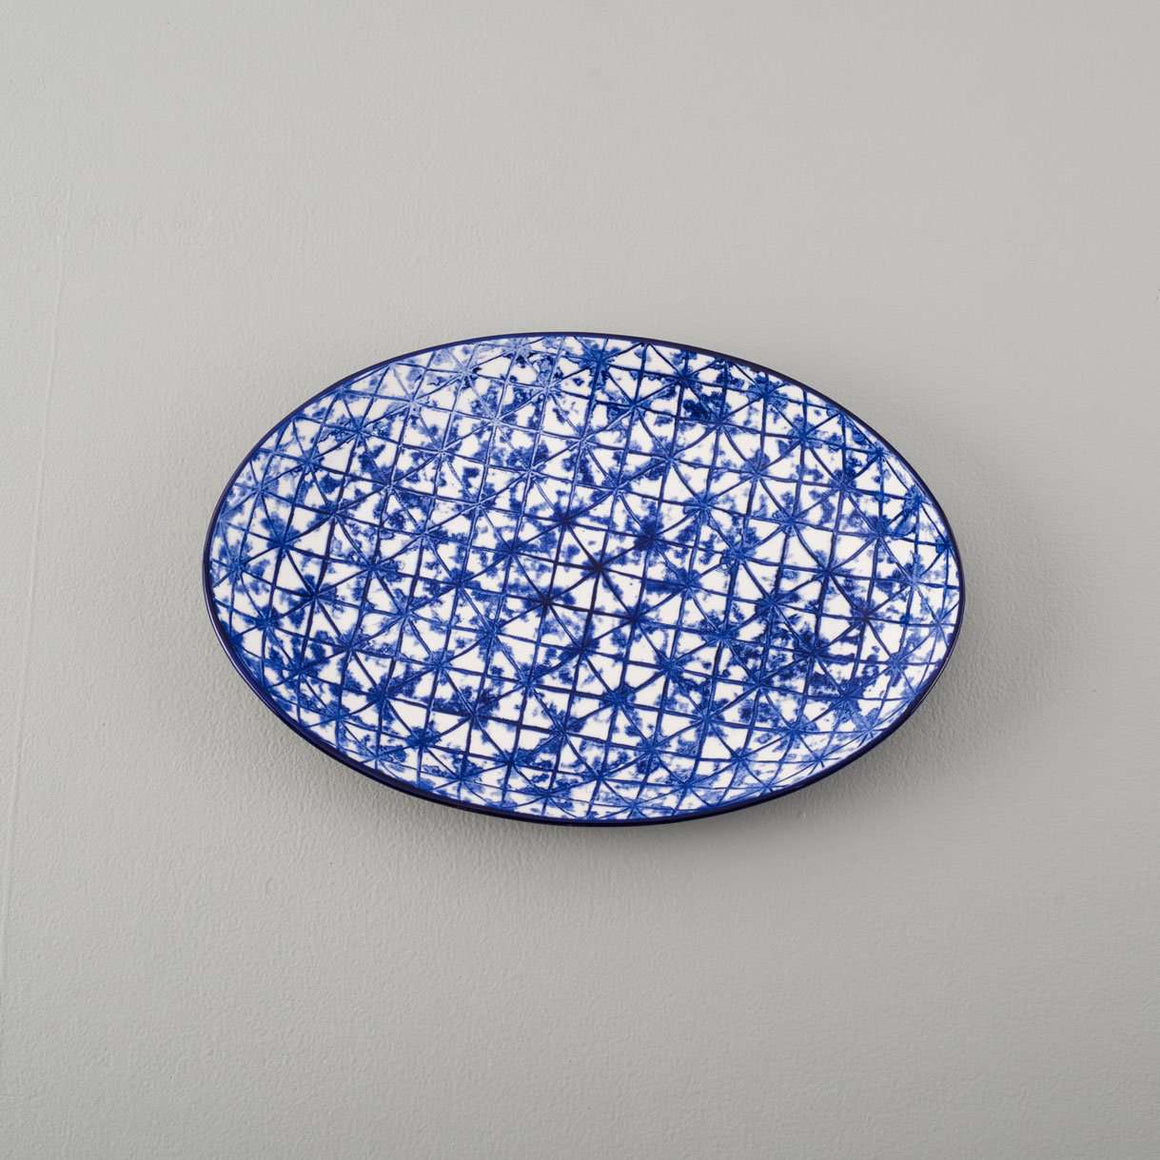 Mirage - Blue Patterned Dinner Plate 10""